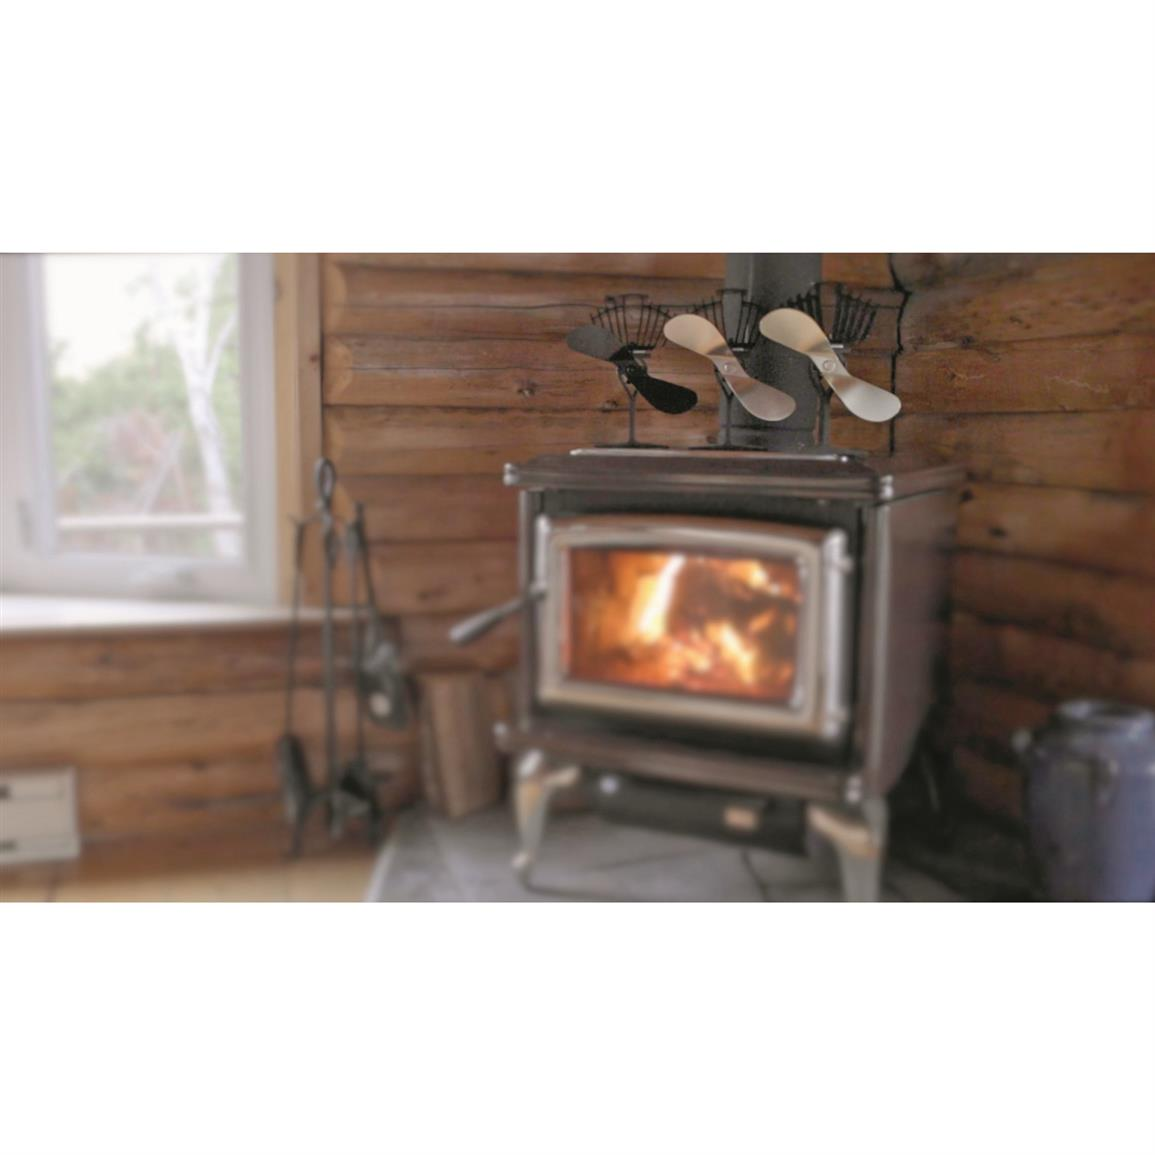 As the surface temperature of your wood stove heats up, the fan will begin to turn